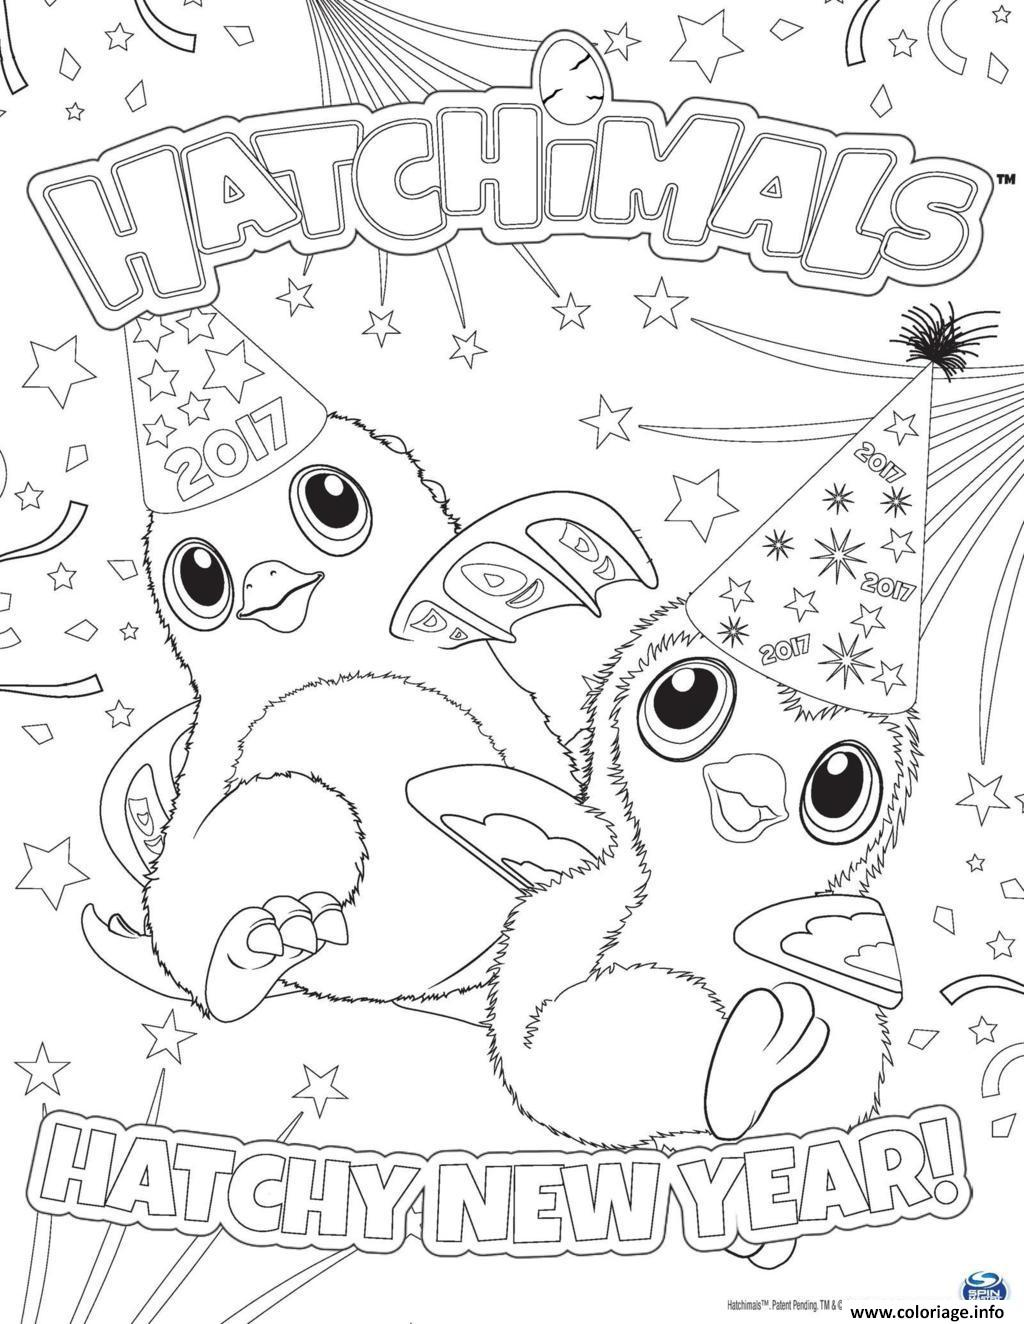 Coloriage Hatchimals Nouvel An 2017 Hatchy Jecolorie Com